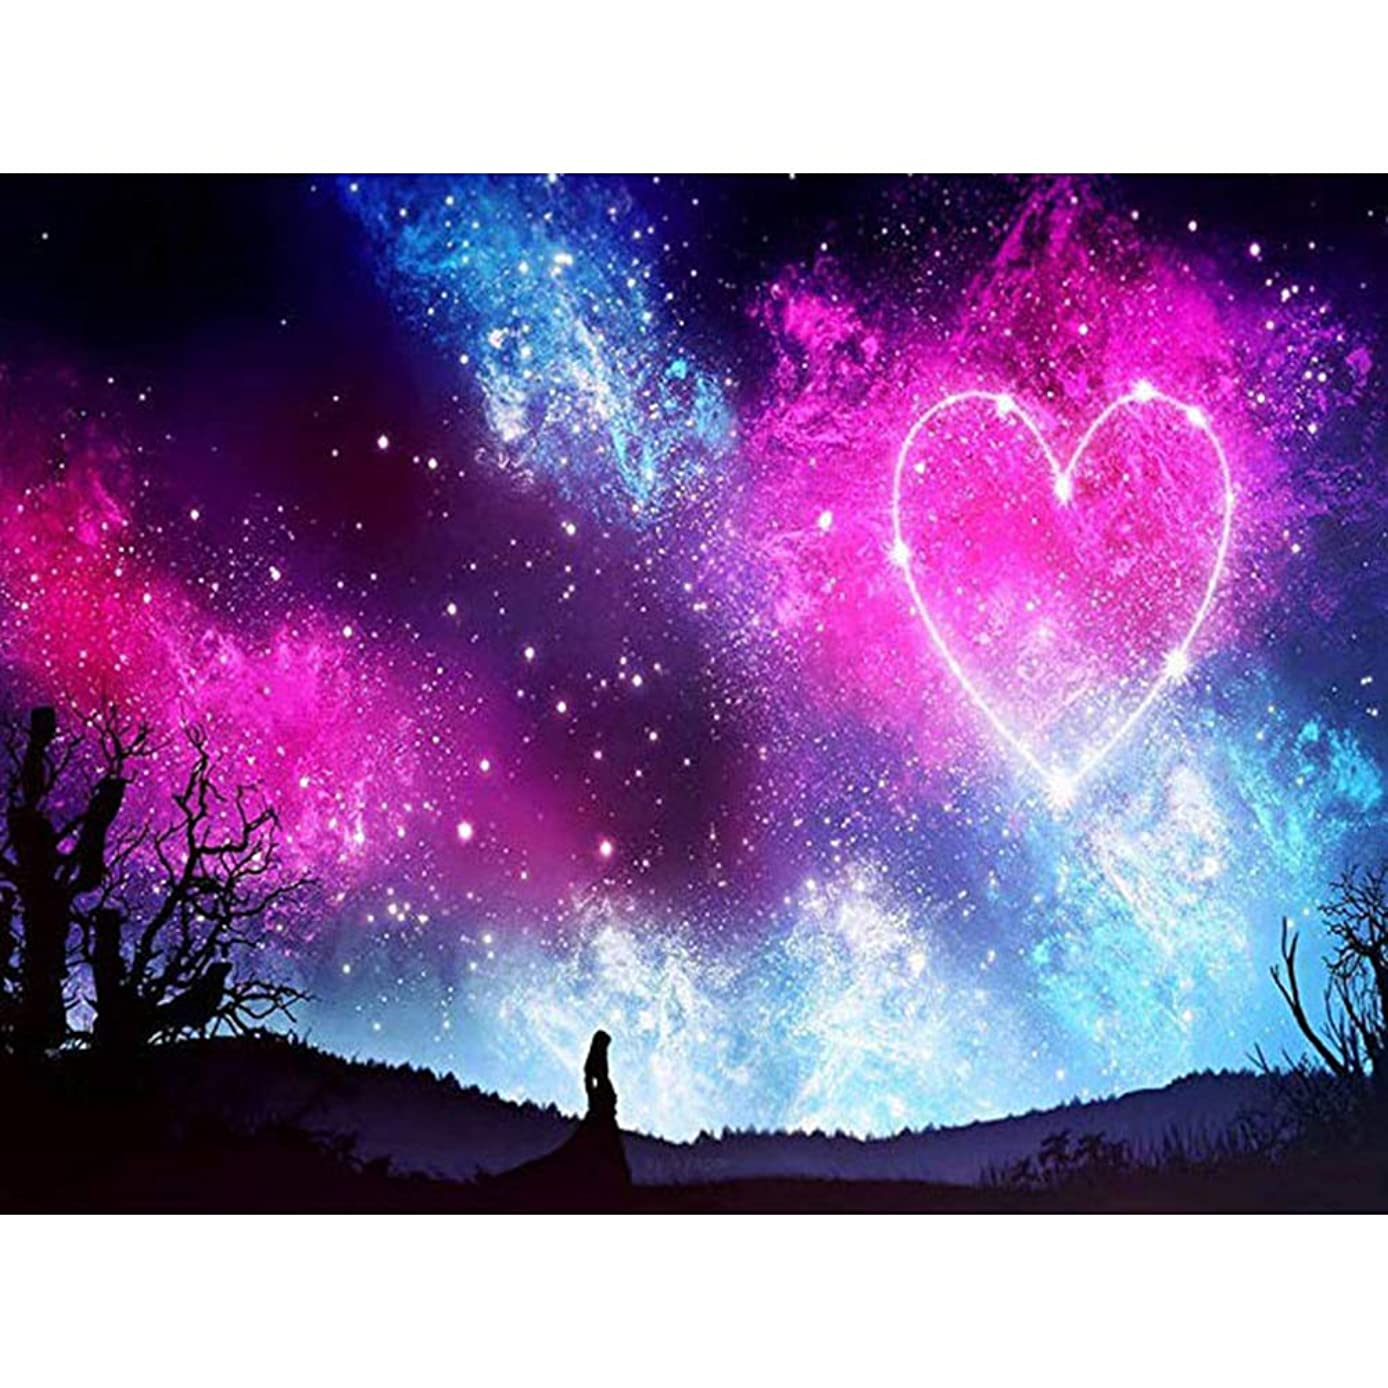 DIY 5D Diamond Painting by Number Kits, Crystal Rhinestone Diamond Embroidery Paintings Pictures Arts Craft for Home Wall Decor, Full Drill, Colorful Love in The Star Sky (J6110CSAX-11.8X15.7in)